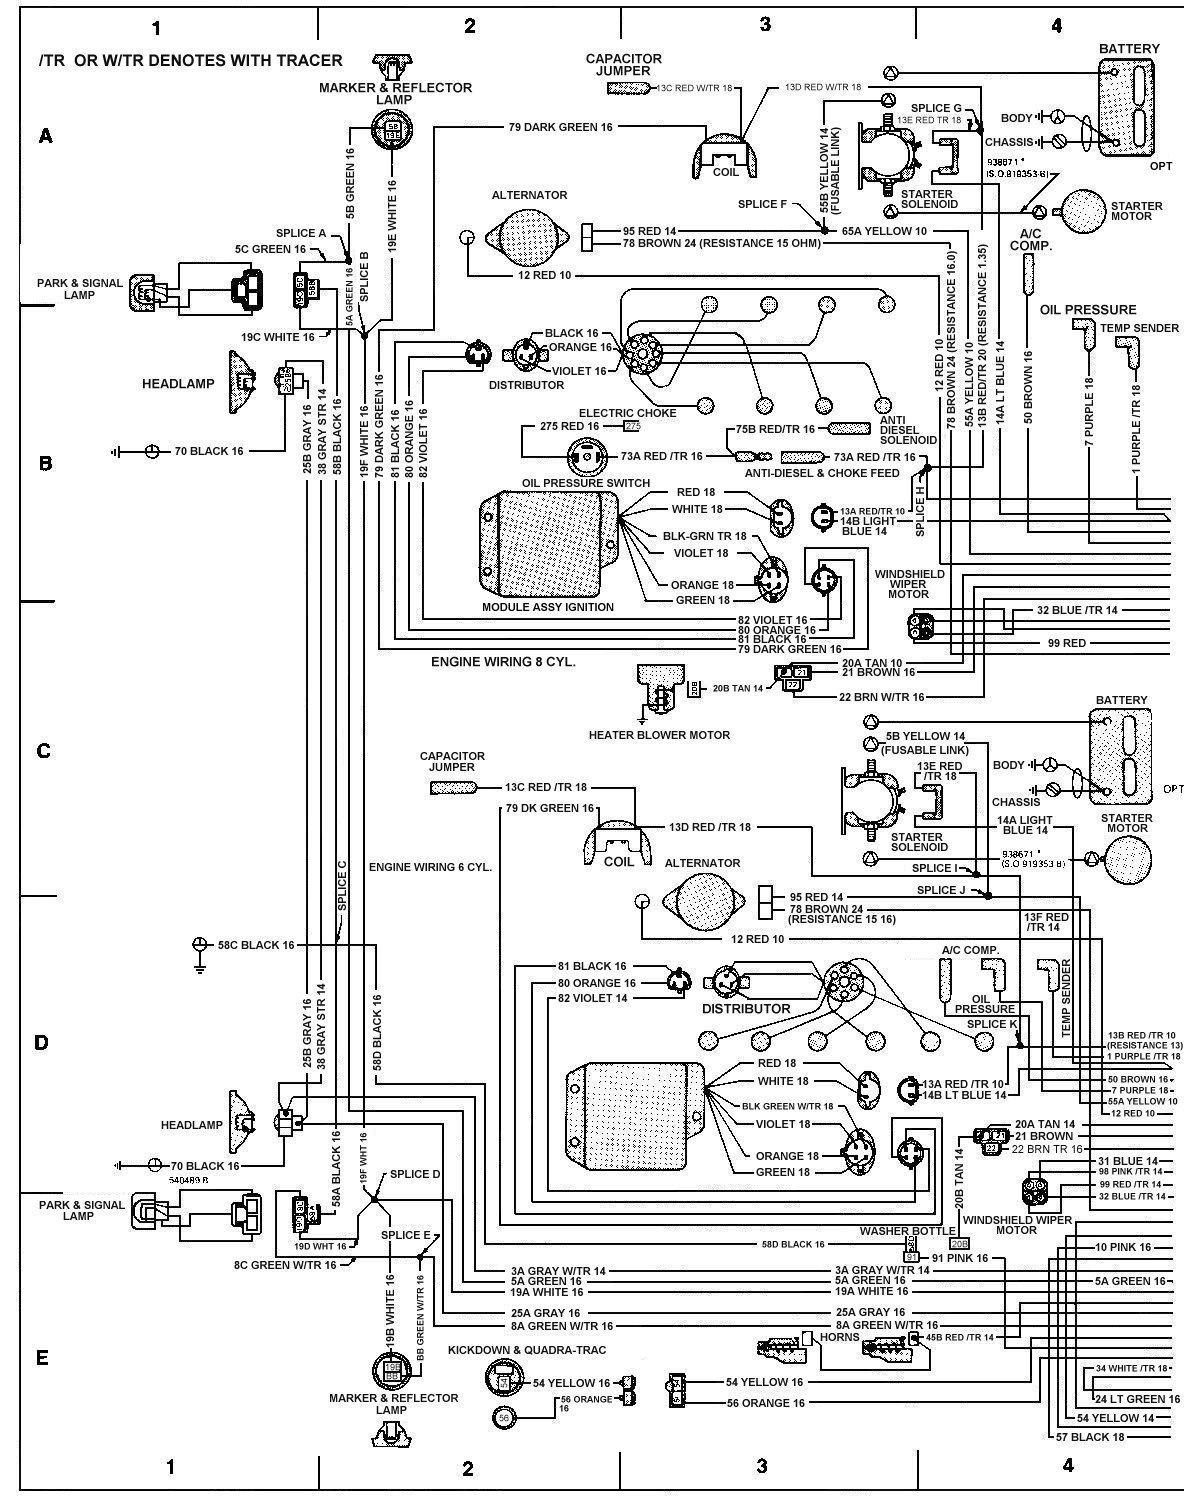 Wire Schematic For Cj5